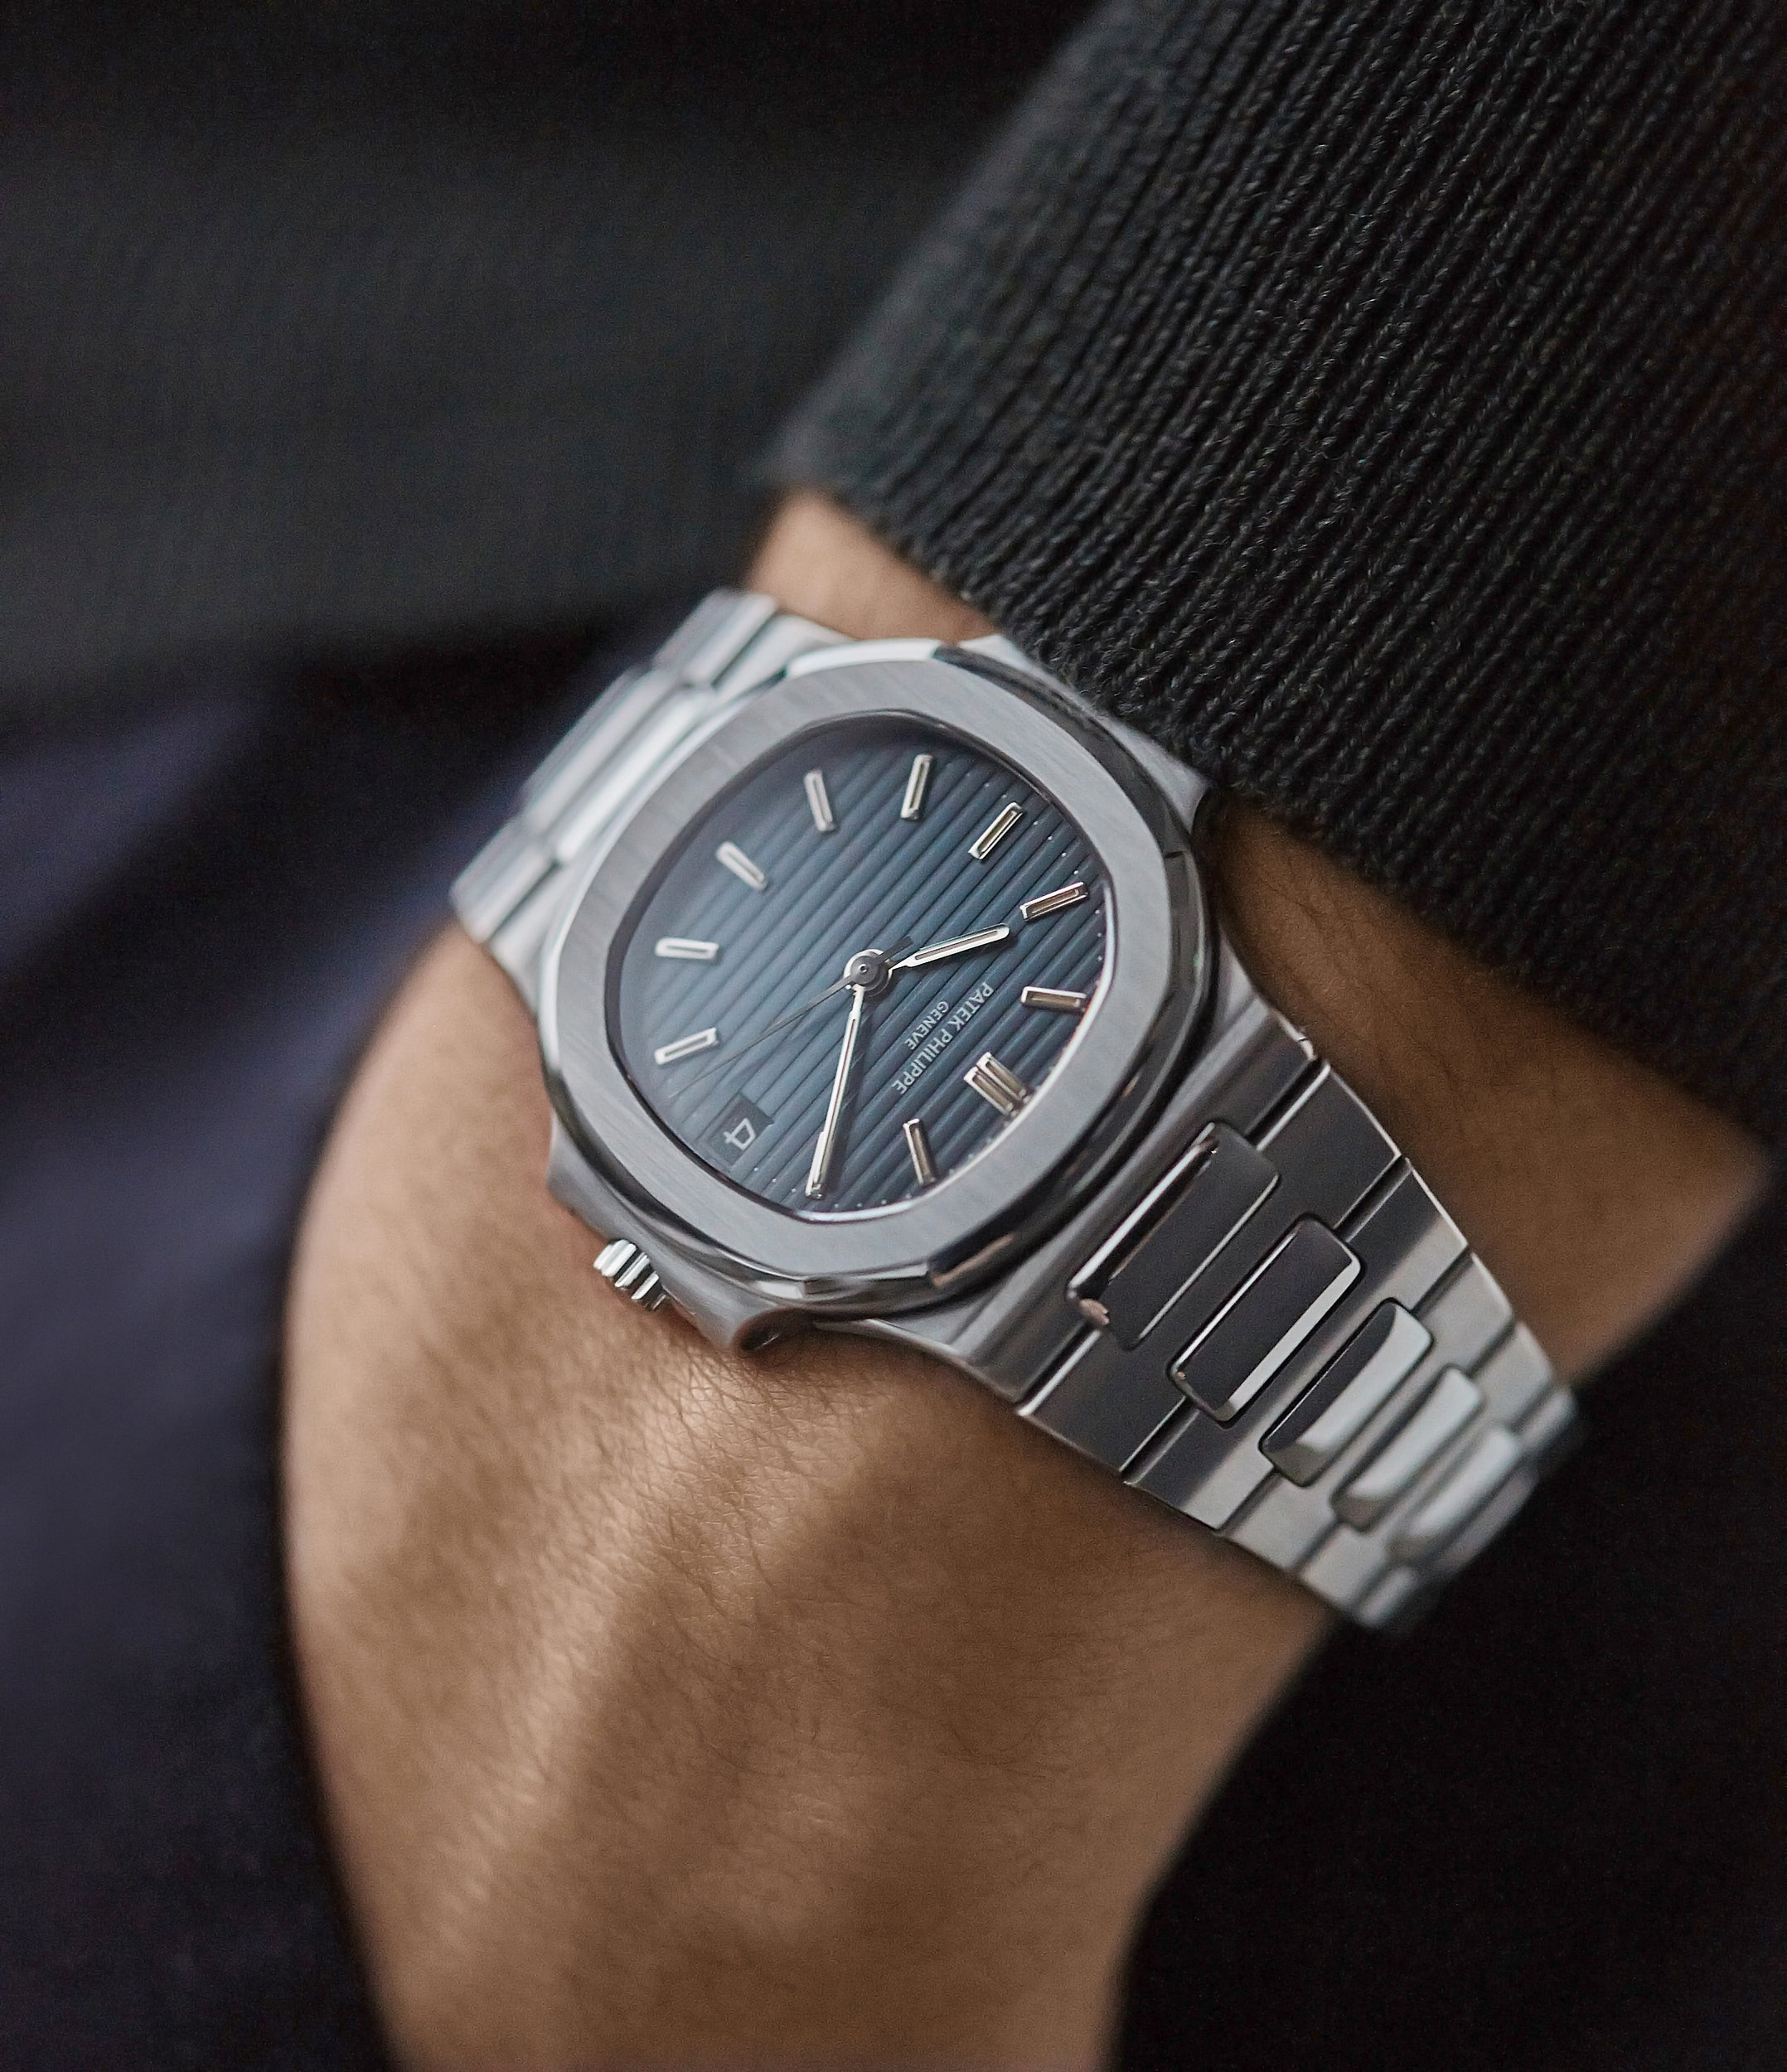 selling Patek Philippe Nautilus 3800 Sigma dial steel luxury sports watch for sale online A Collected Man London UK specialist rare watches